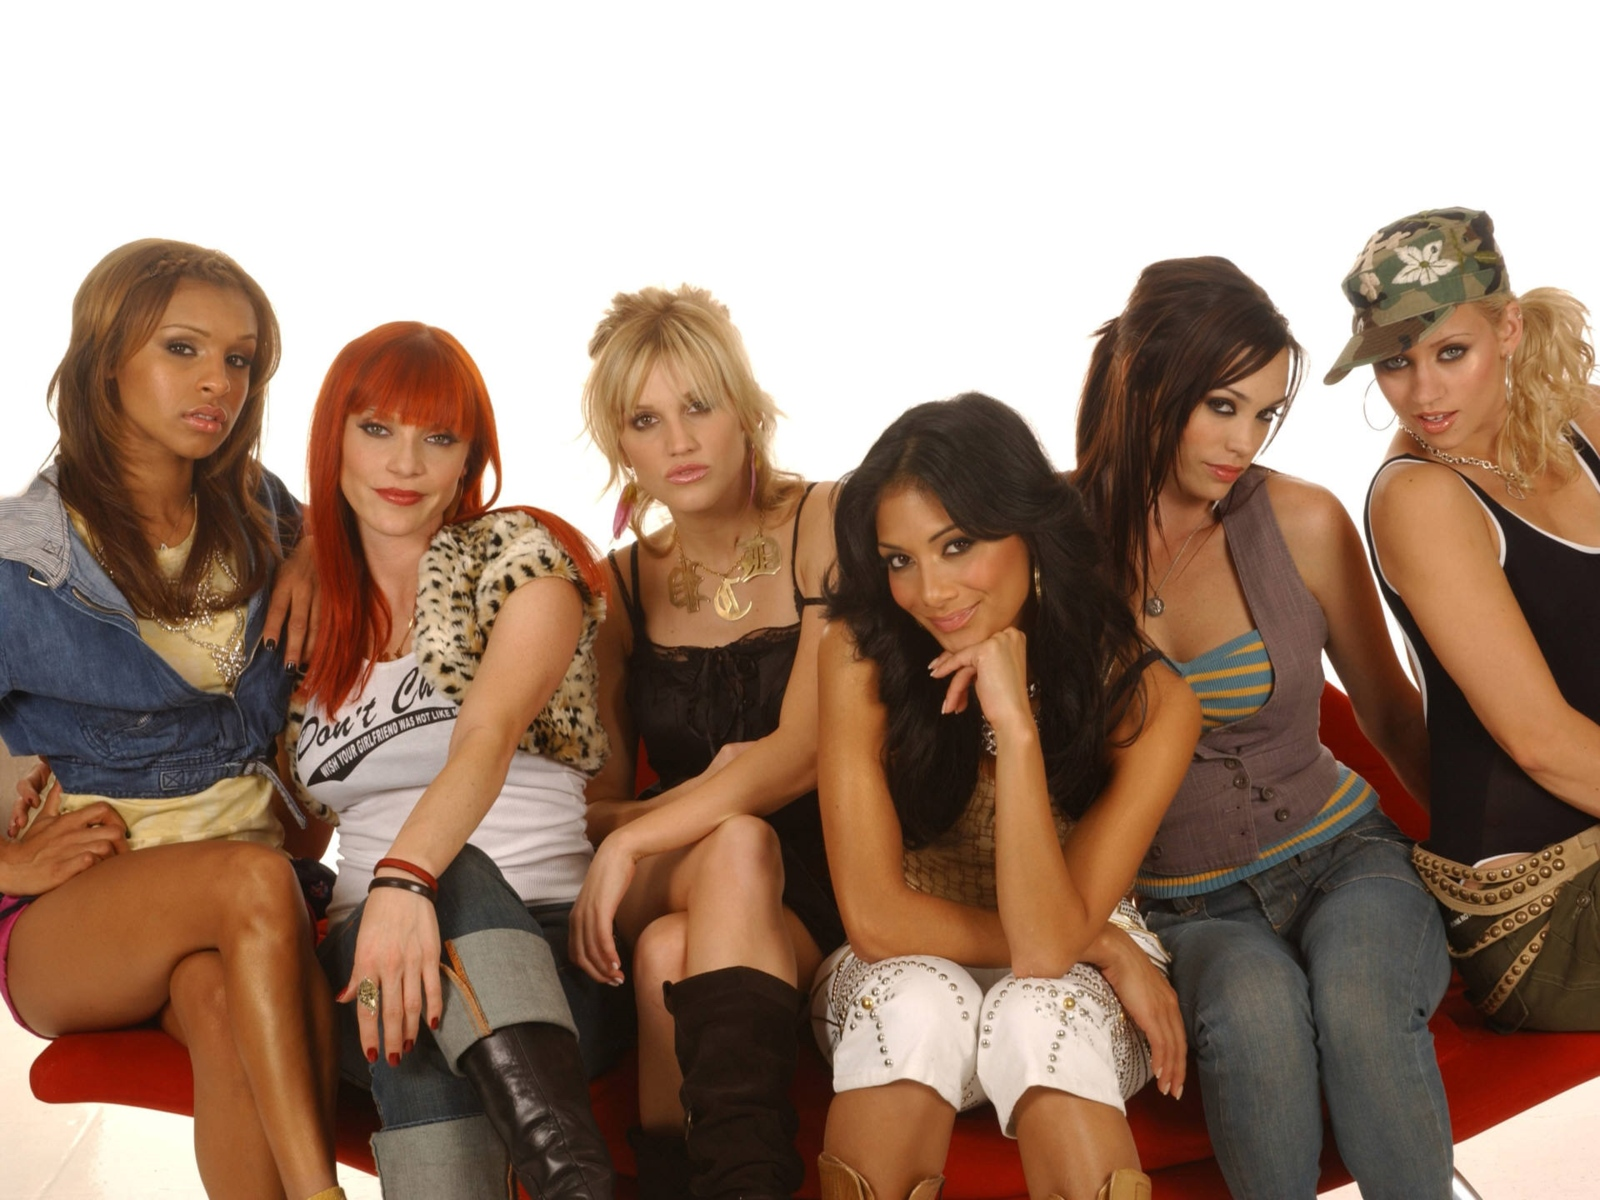 The Pussycat Dolls Buttons Mp3 Song Download Song